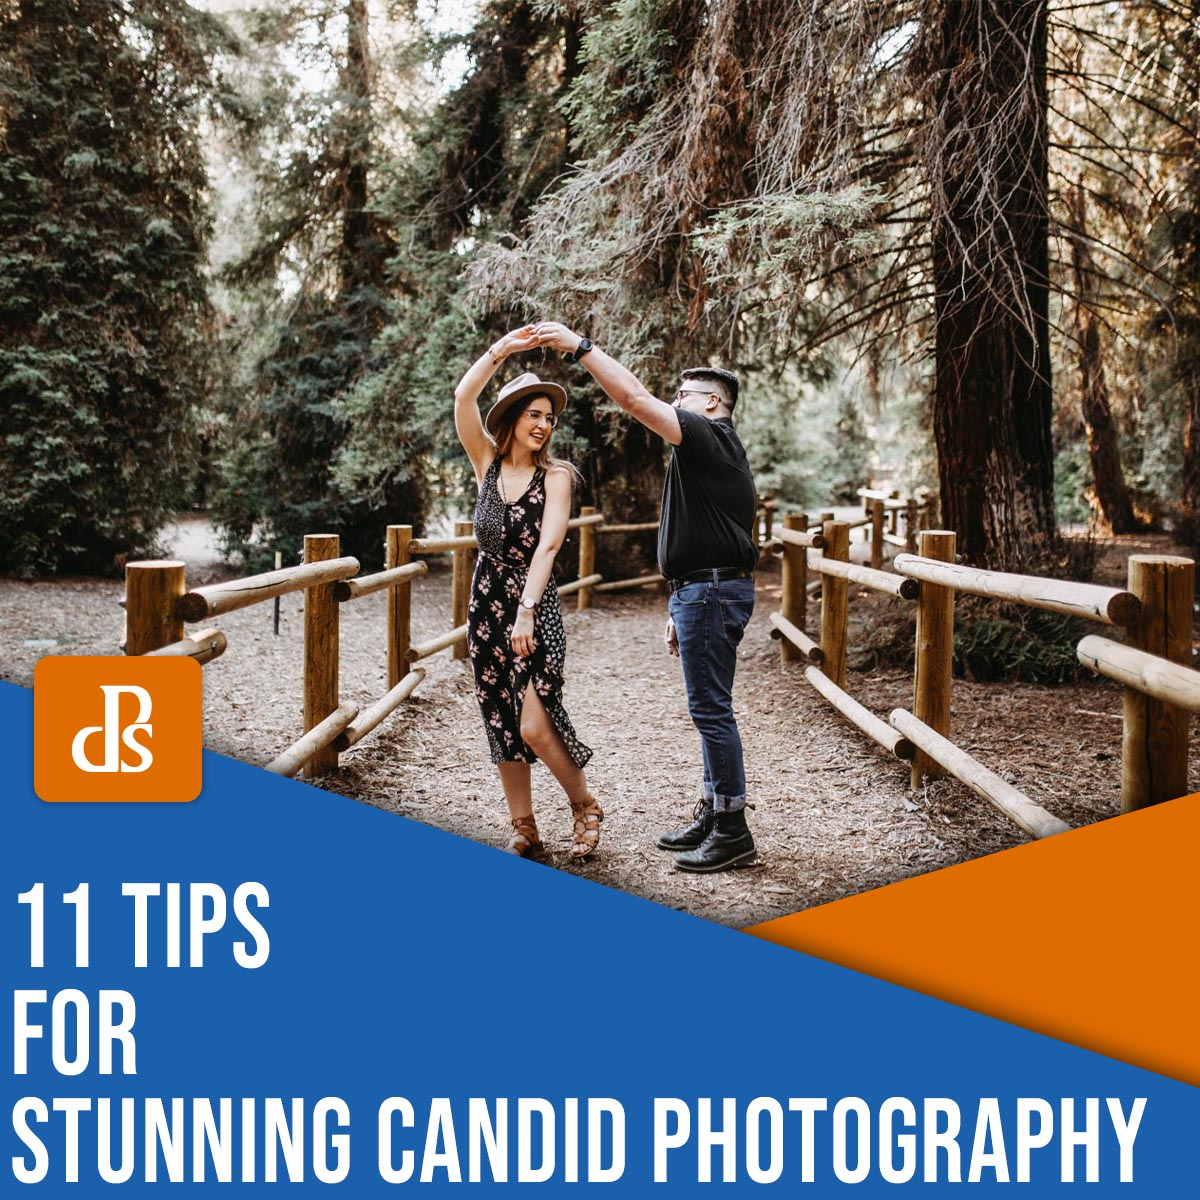 11 tips for stunning candid photography